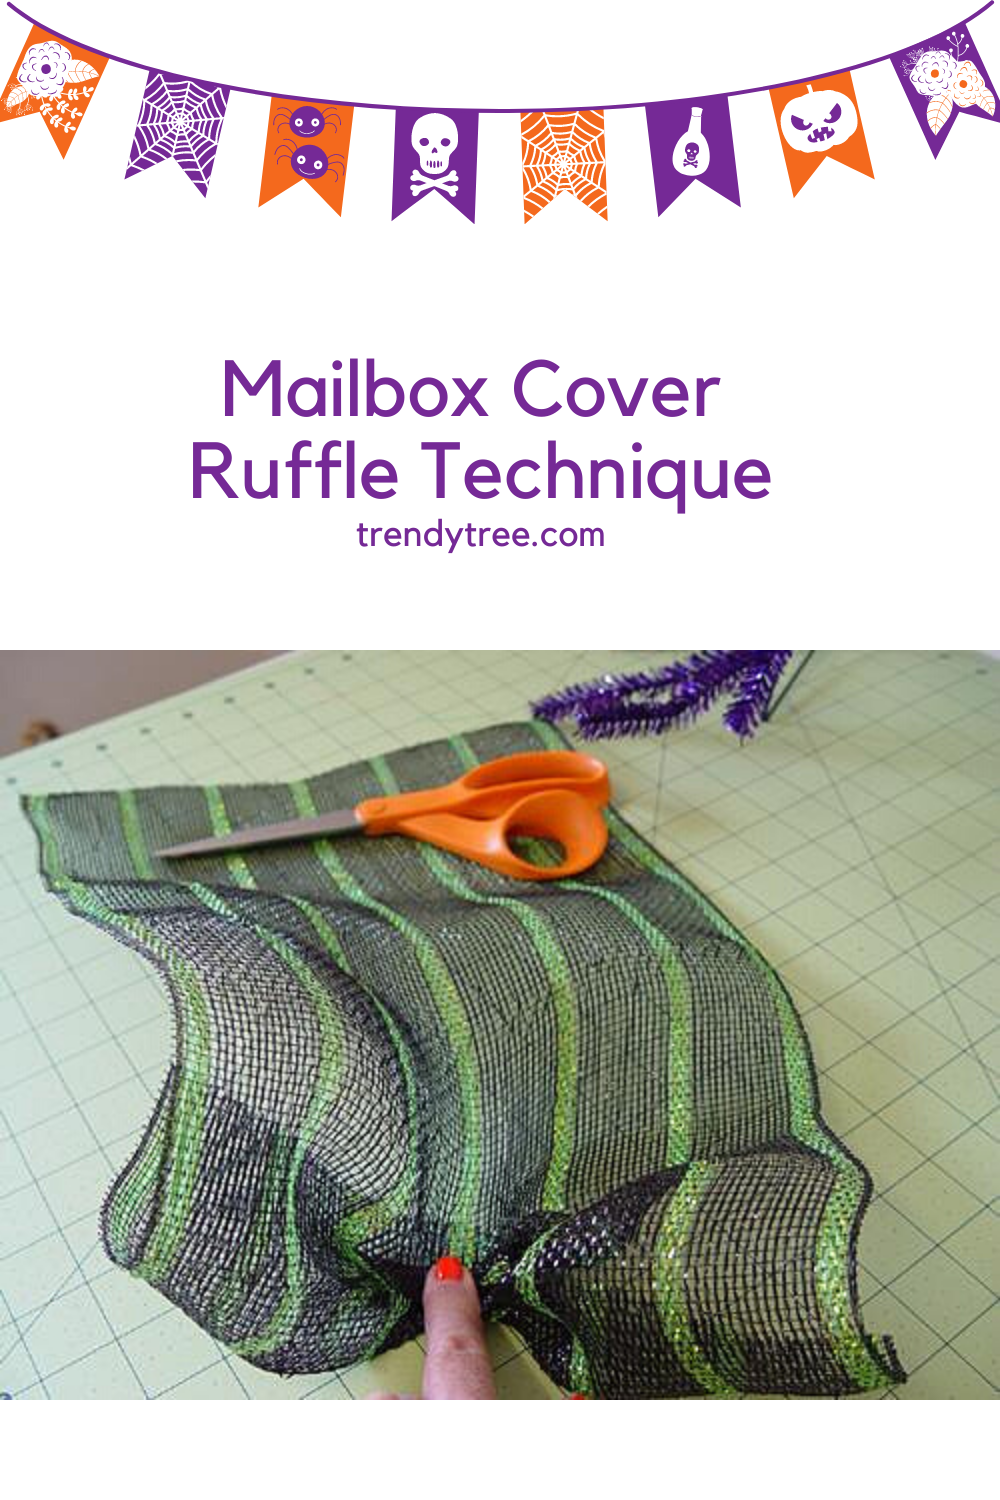 Ruffle technique for a mailbox cover using Deco Mesh from Trendy Tree